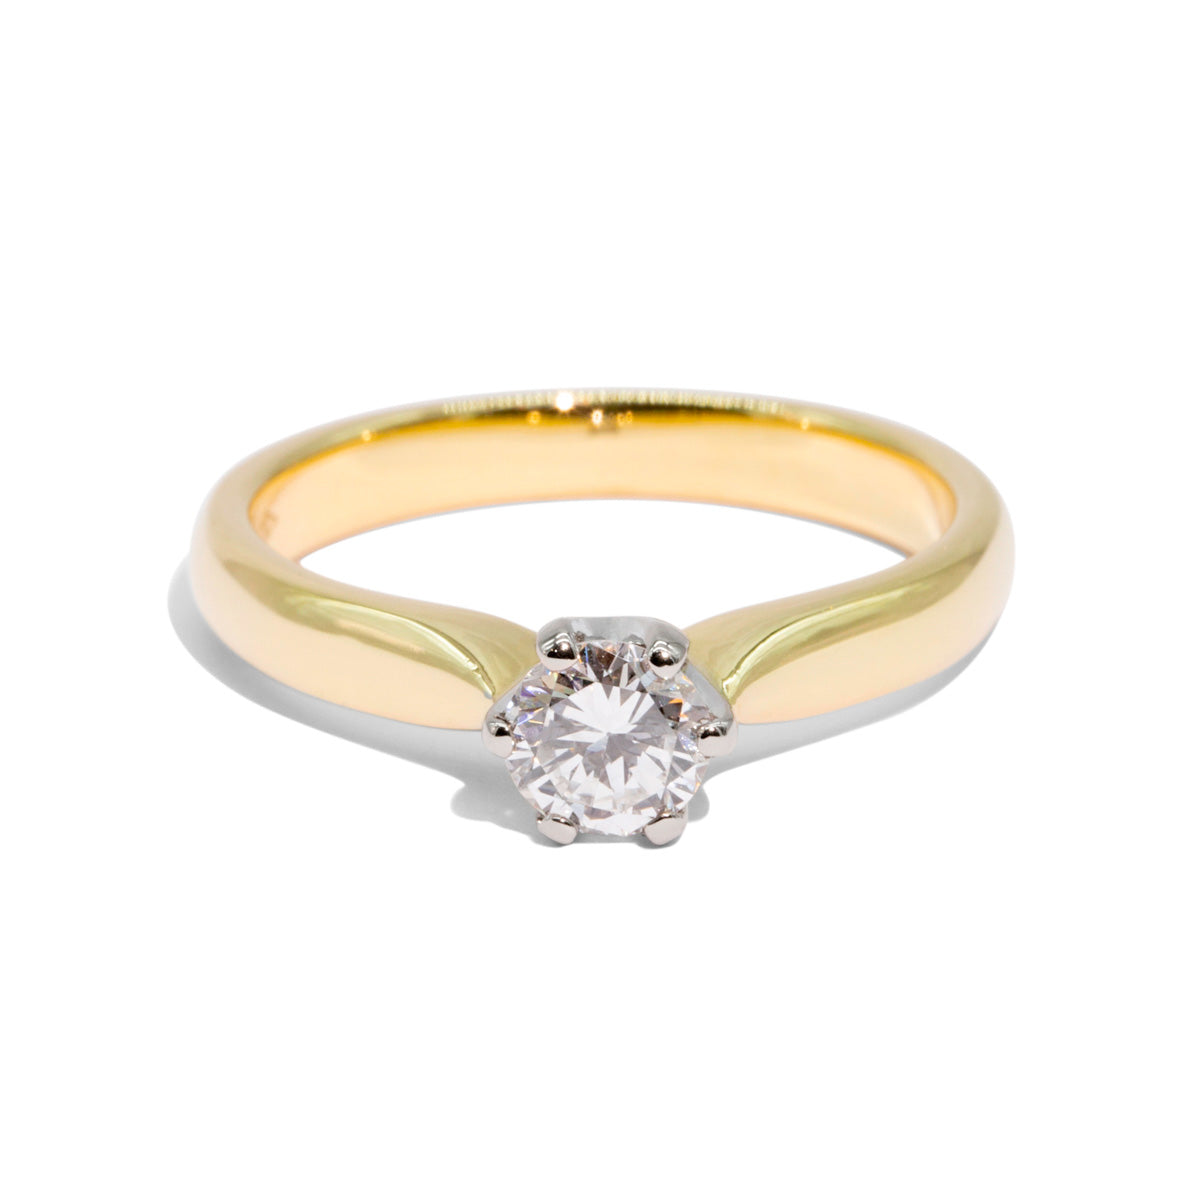 The Cecile Vintage Diamond Ring